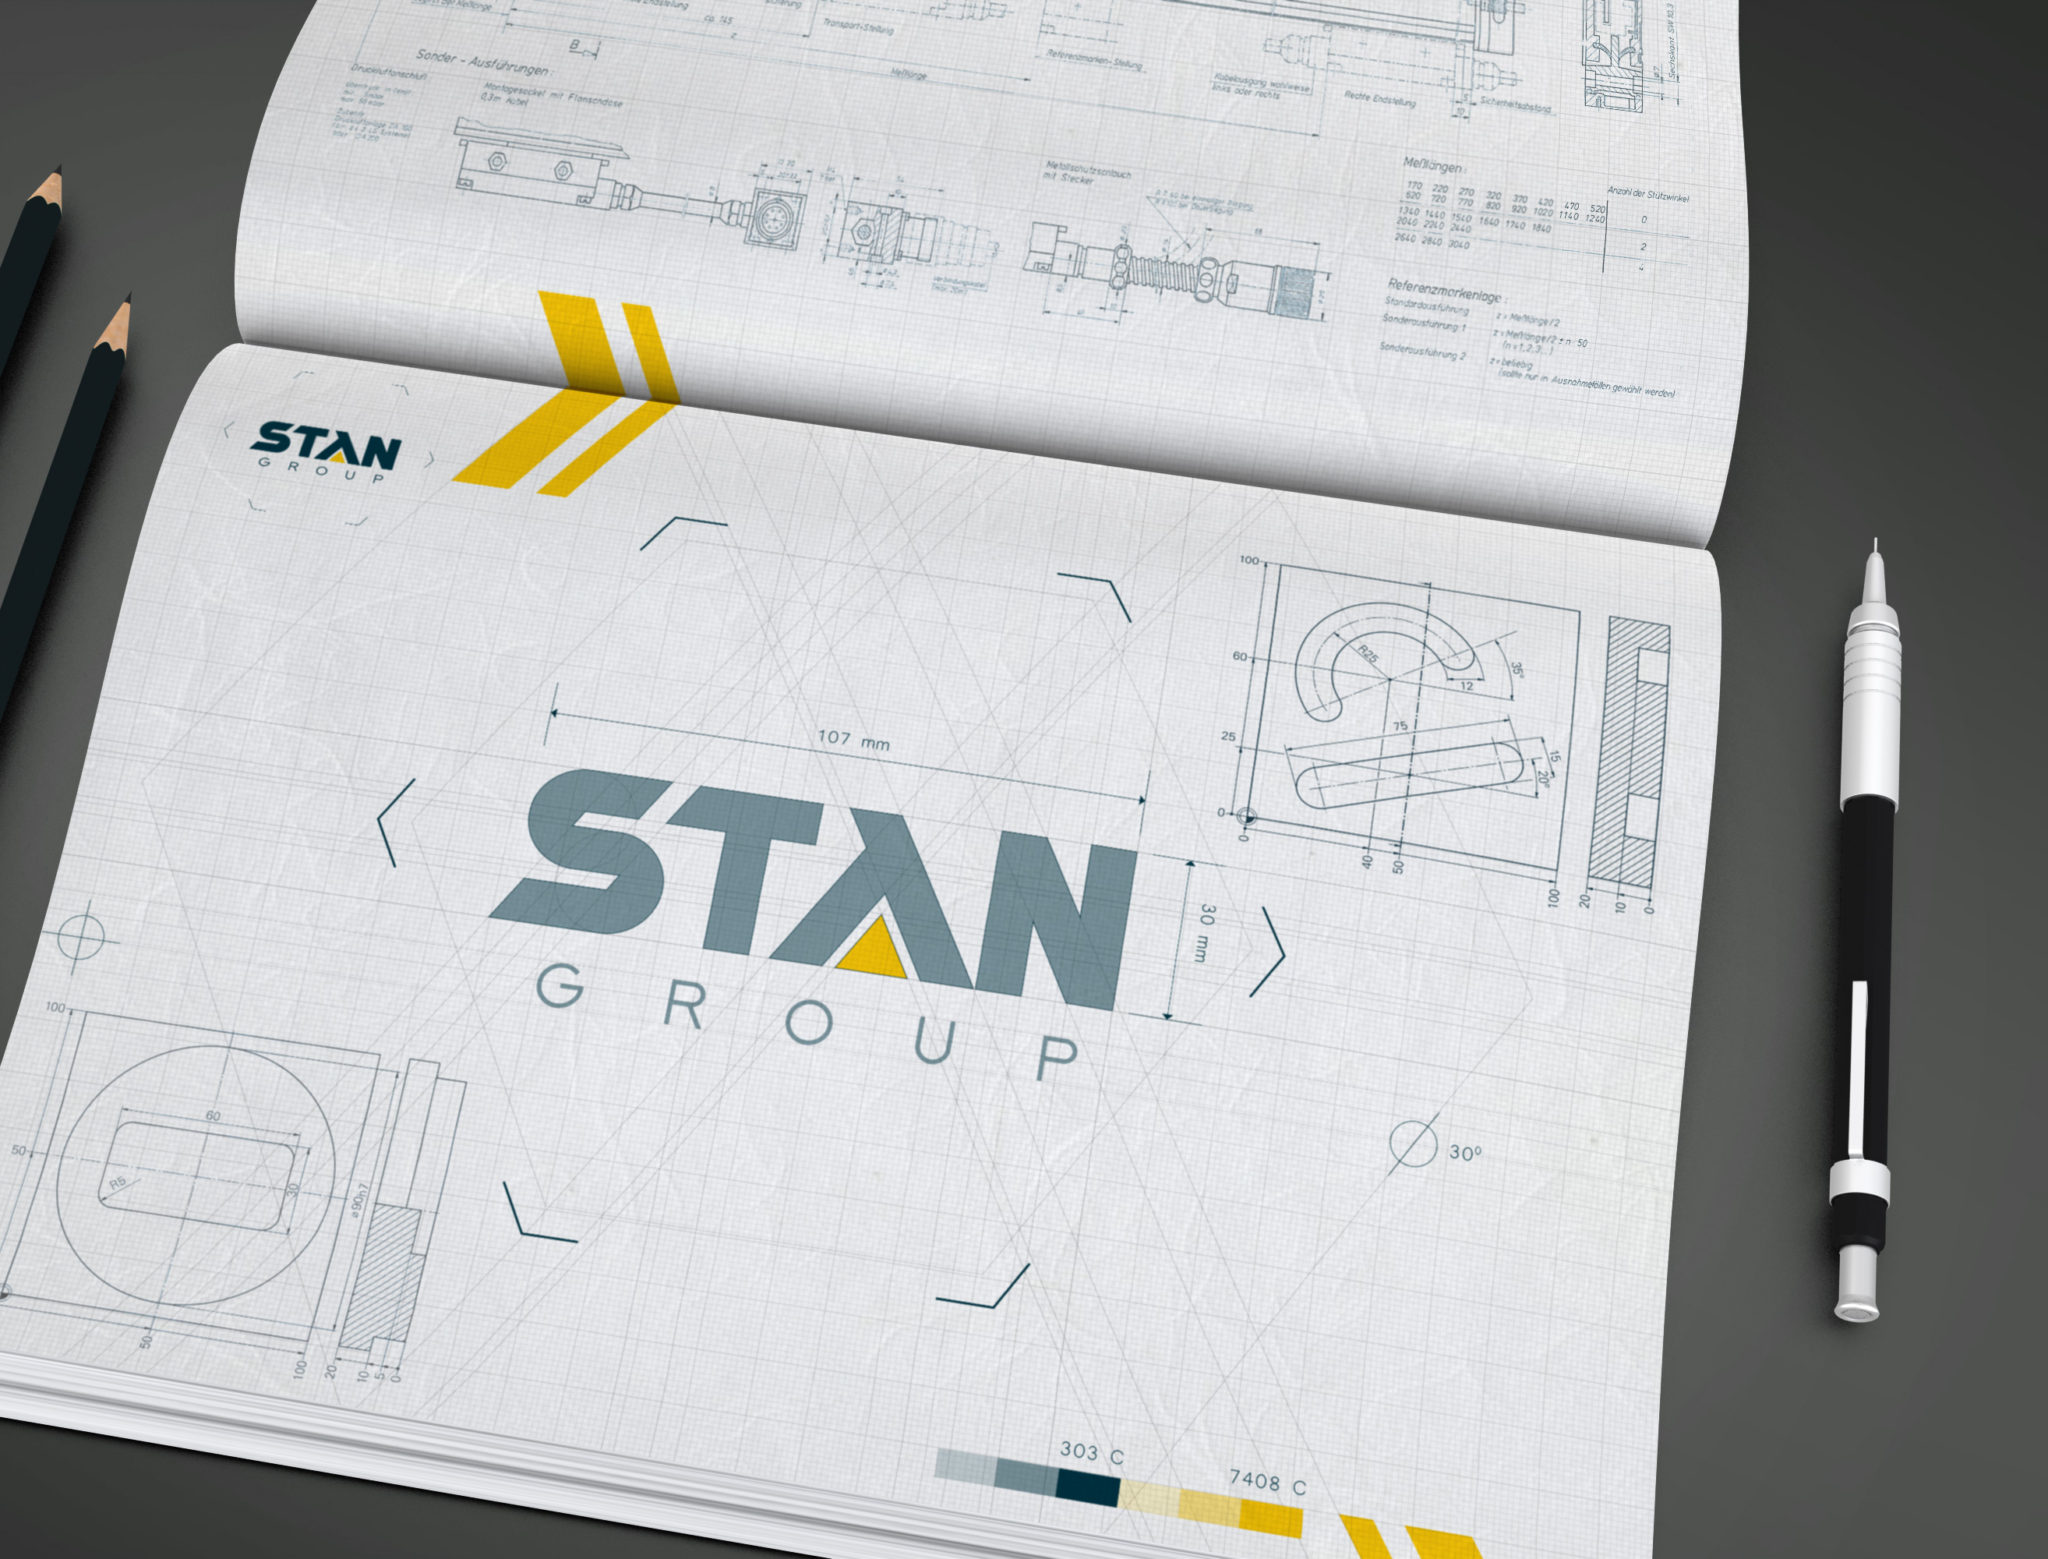 stan_group_astro_project_brand_book